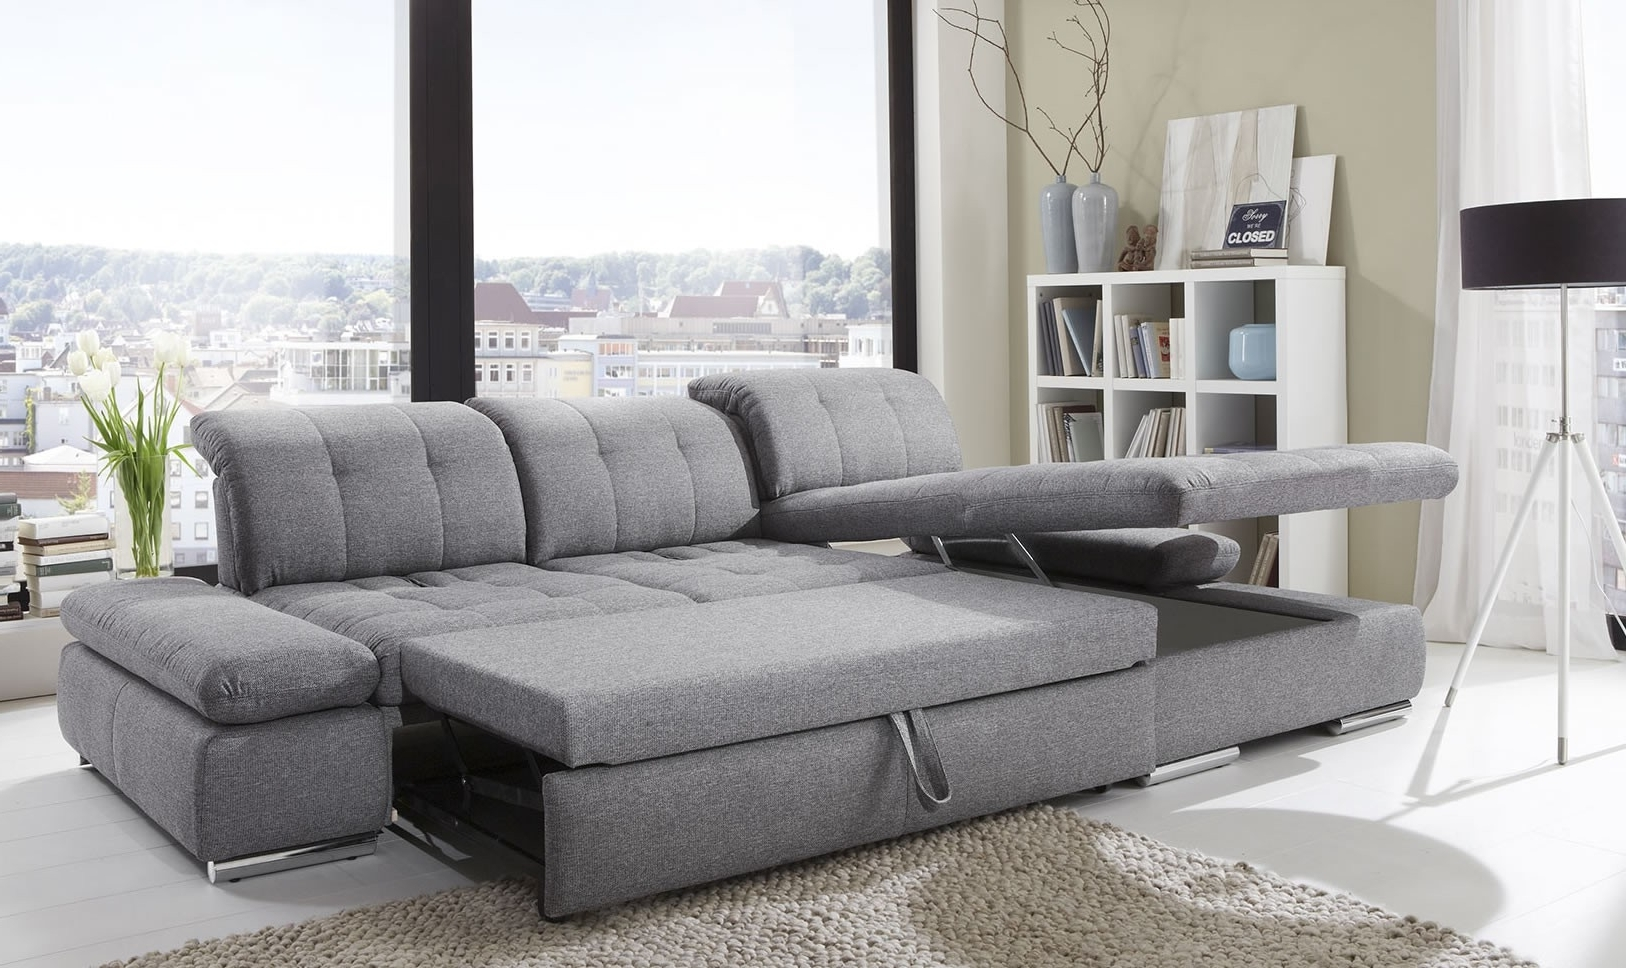 Most Popular Alpine Sectional Sleeper Sofa, Left Arm Chaise Facing, Black Regarding Sectional Sleeper Sofas With Chaise (View 5 of 15)